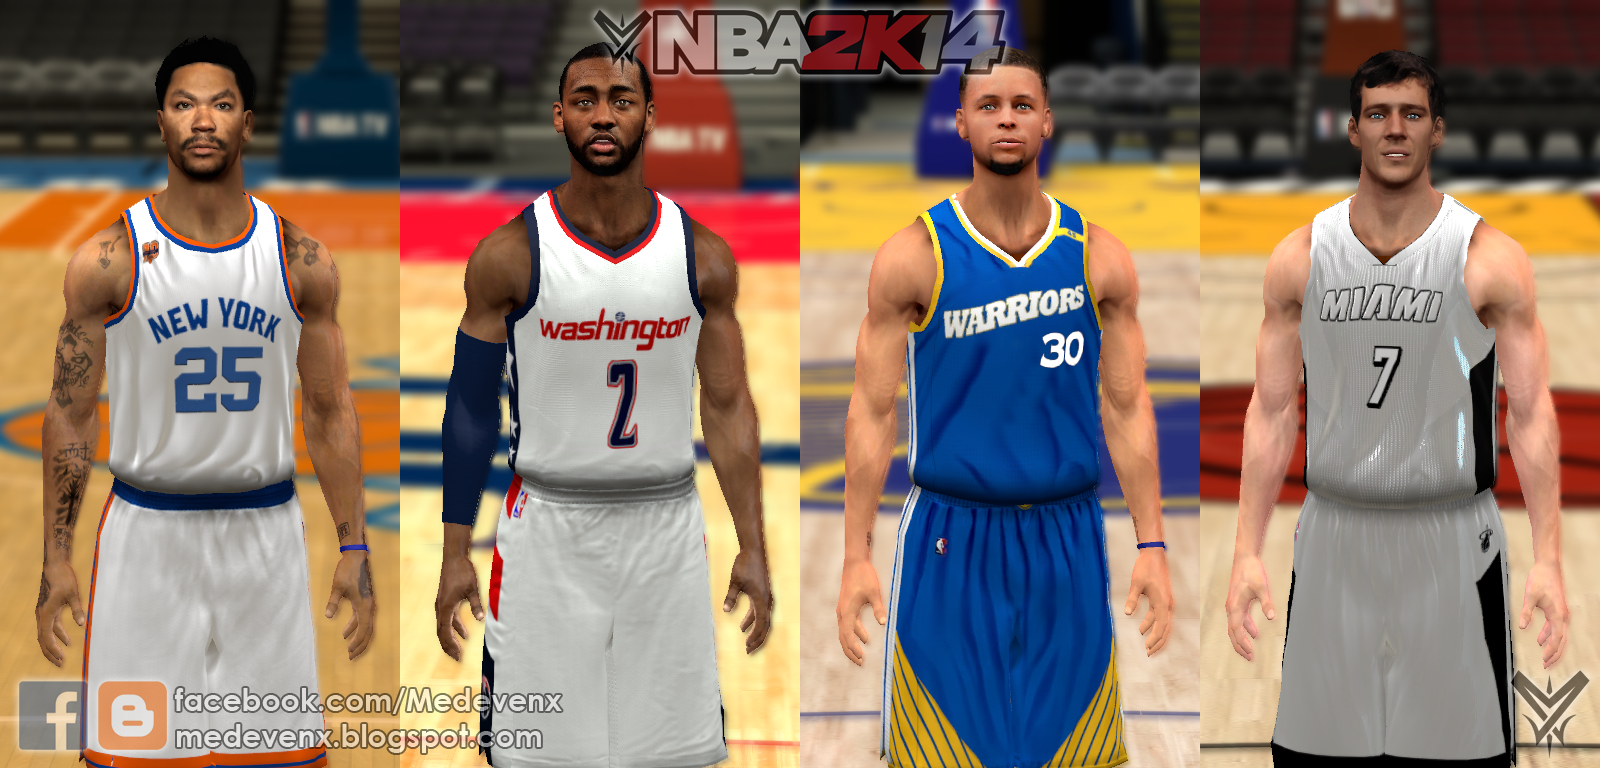 24dfd04a4 We add new jerseys by Aldrin2K such as the Washington Wizards